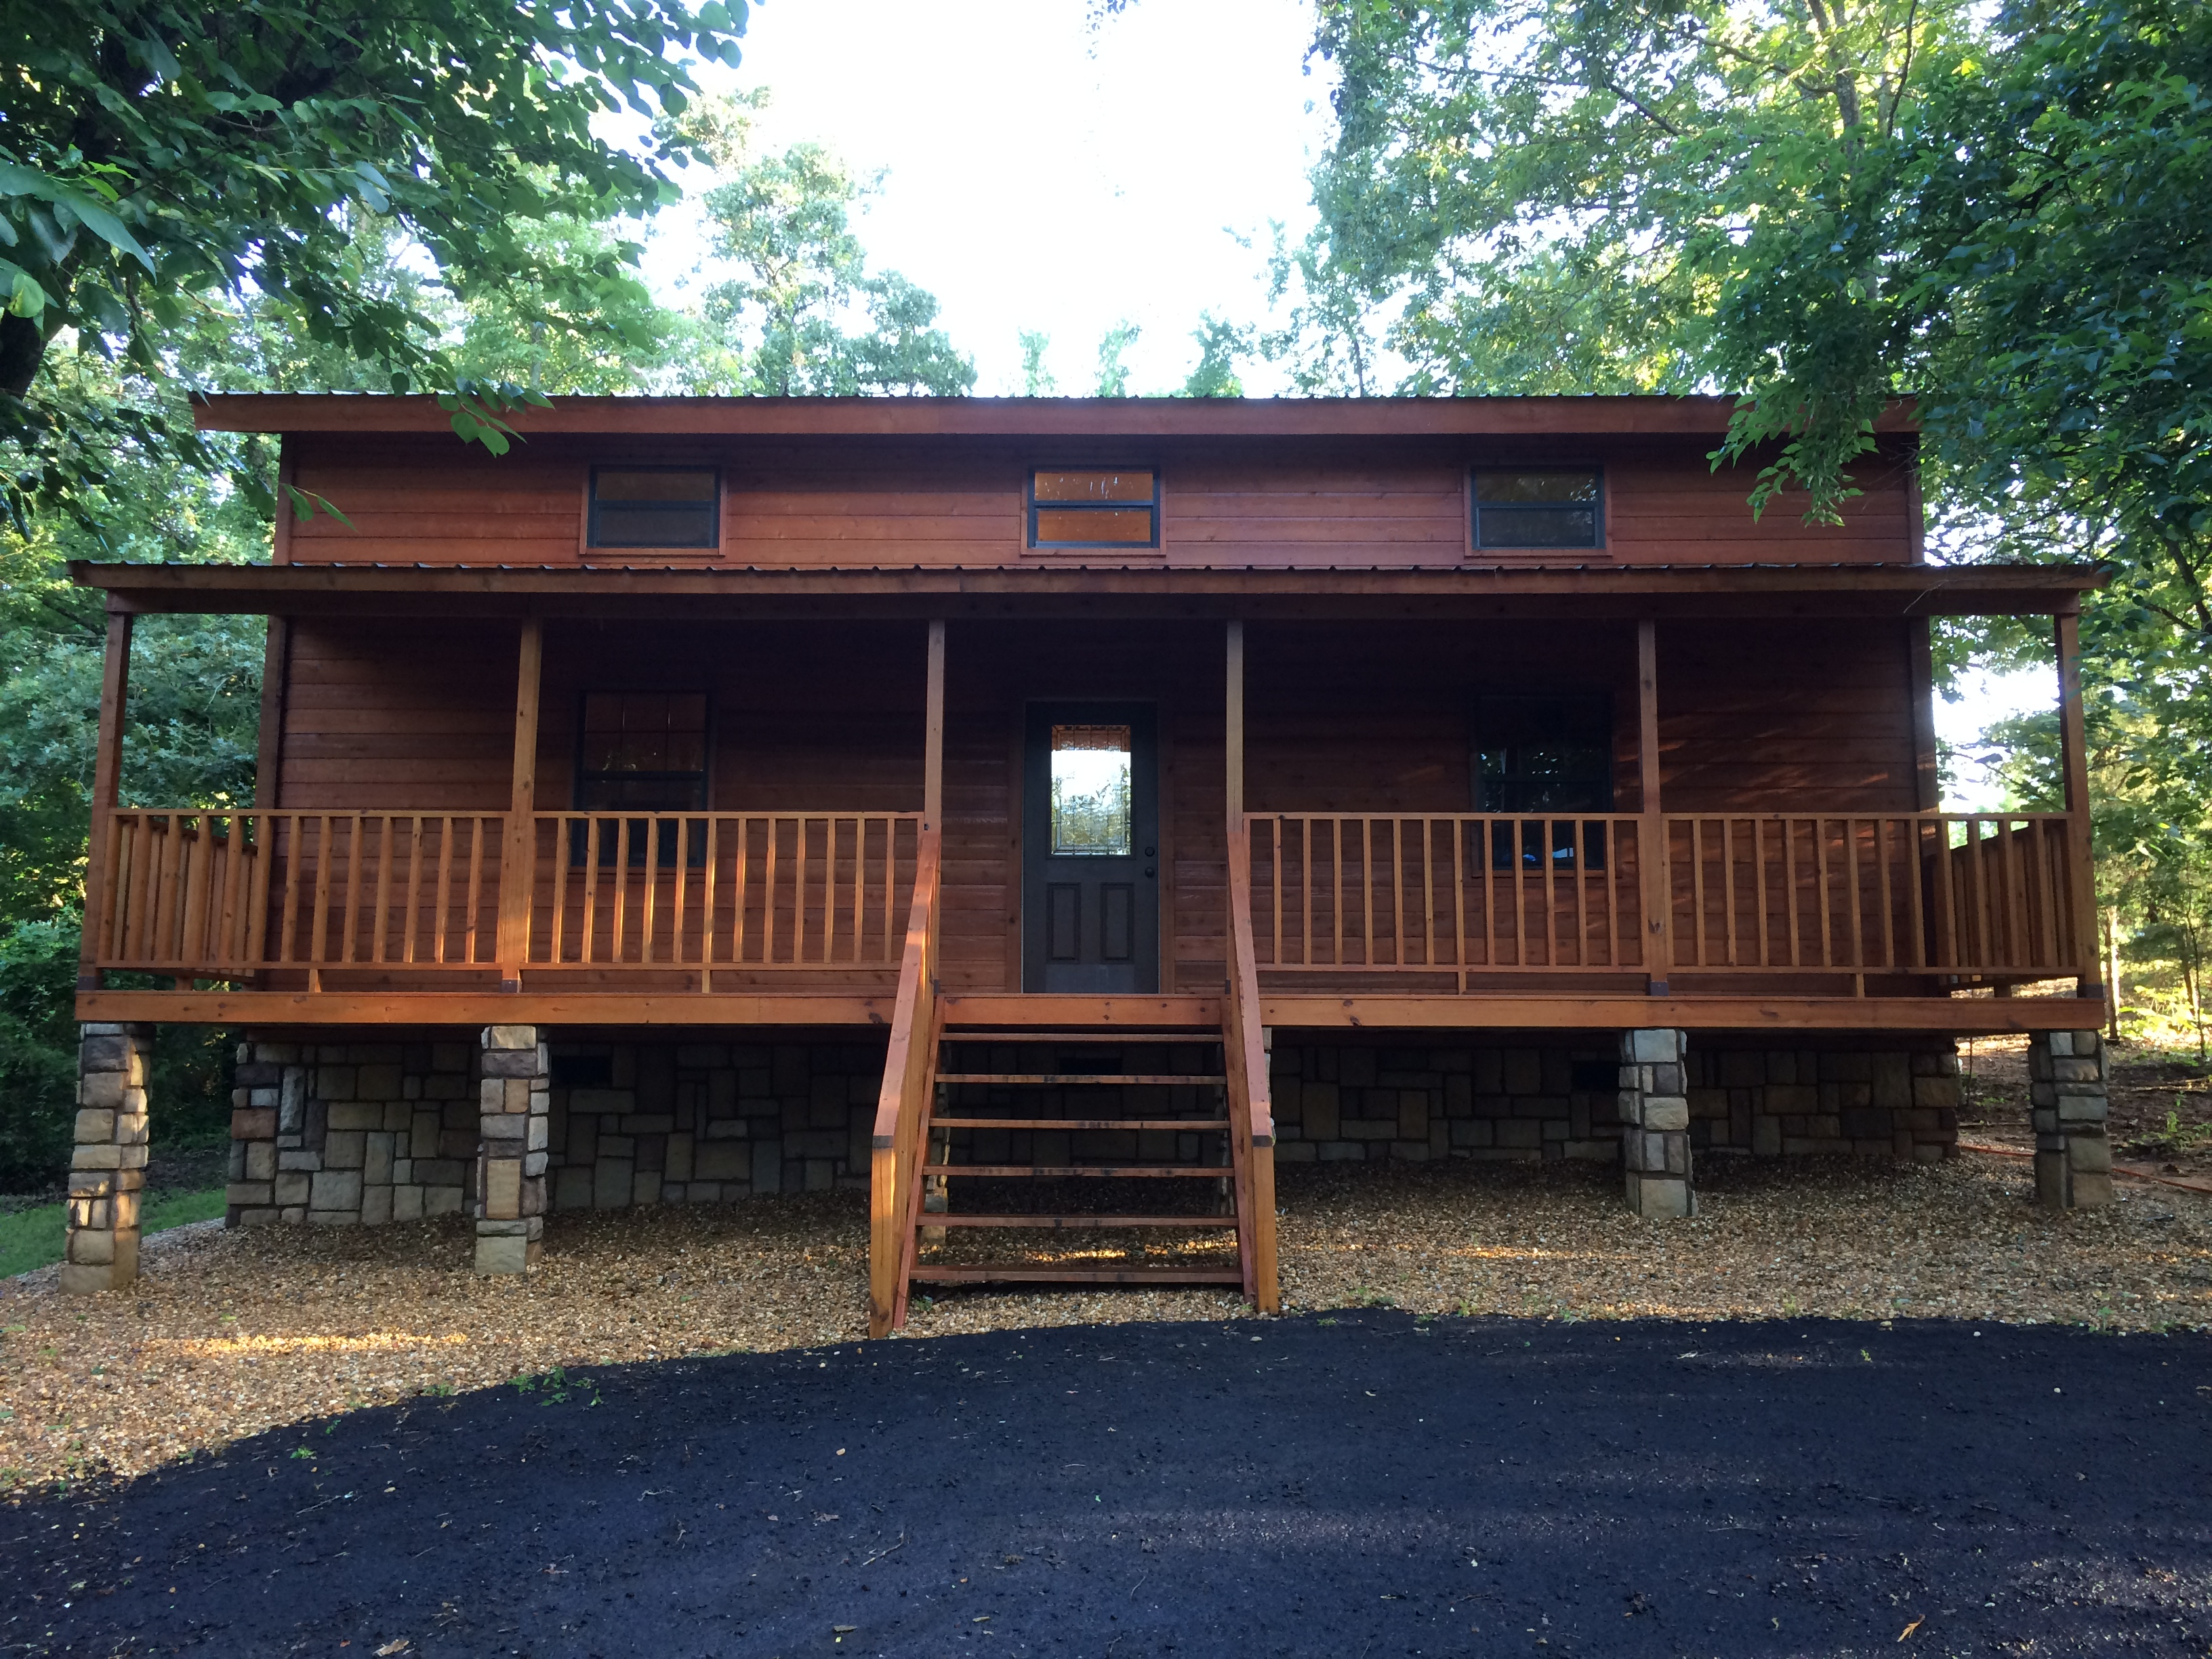 grove city koa kansas type oak lodging rentals cabins site east in missouri cabin campgrounds